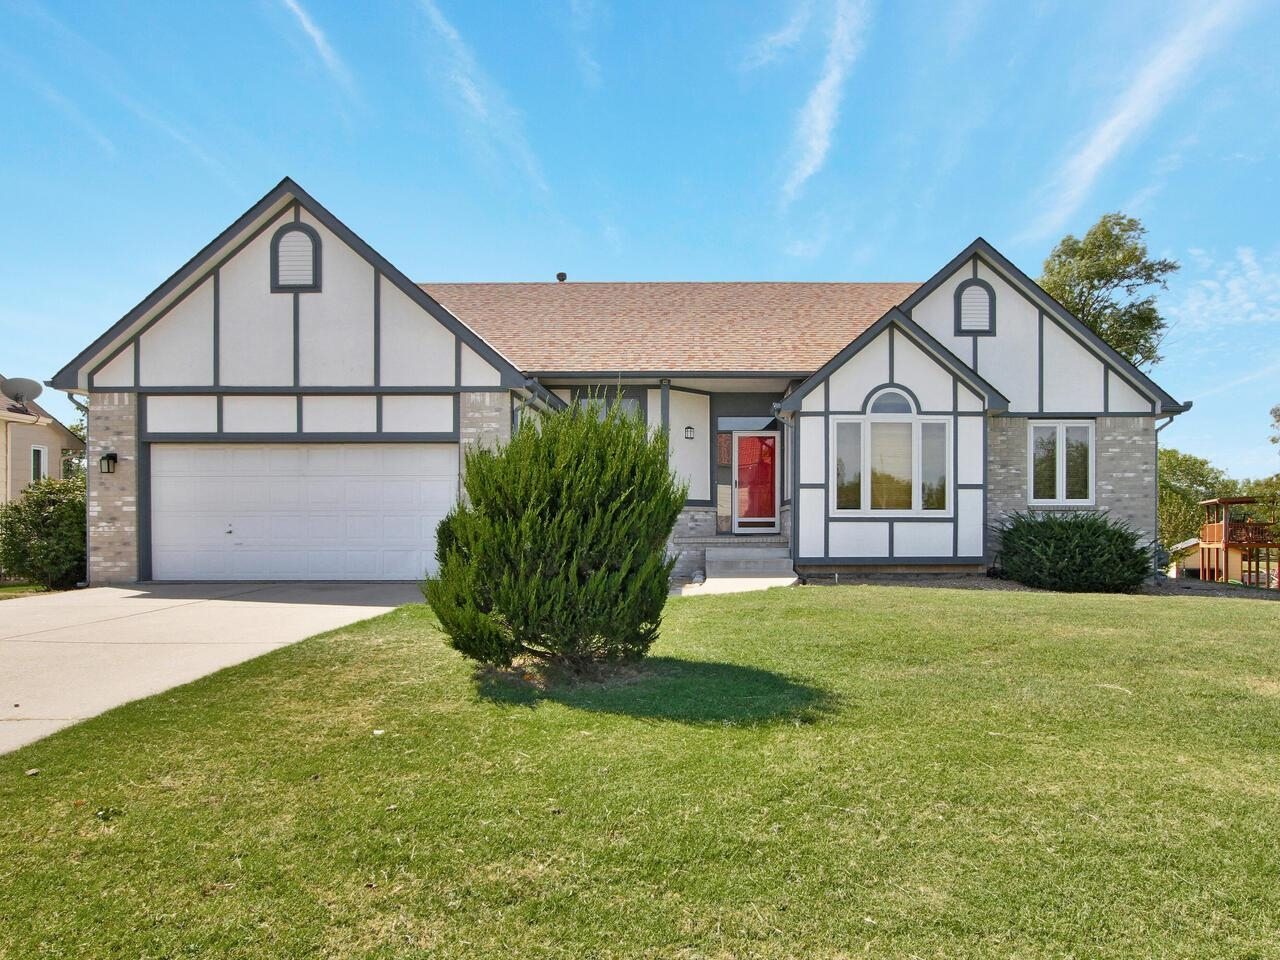 Spacious 5 bedroom, 3 bath ranch with full walk out basement and mature trees! This home features li